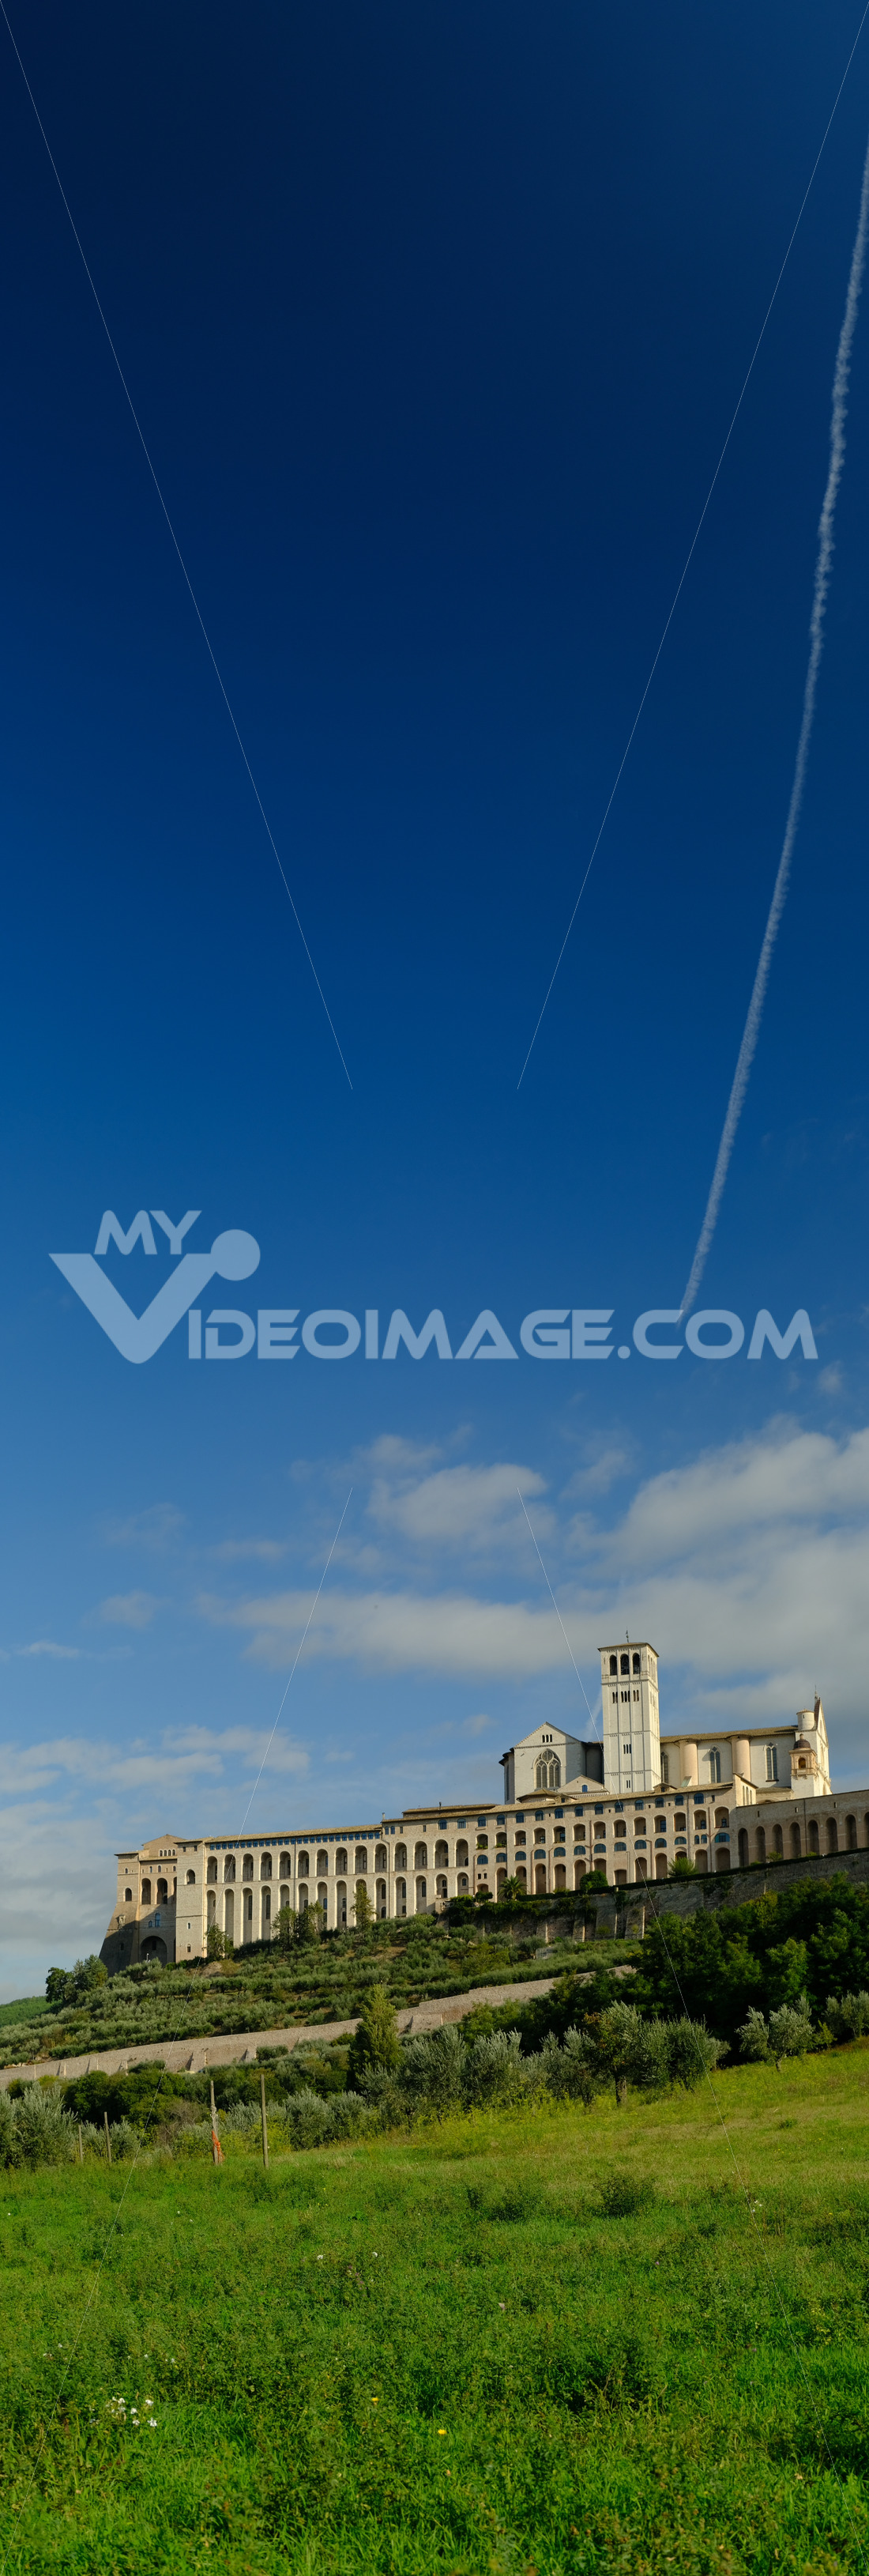 Panoramic photo of the convent and church of San Francesco in Assisi. The architecture immersed in the countryside with cultivation of olive trees. - MyVideoimage.com